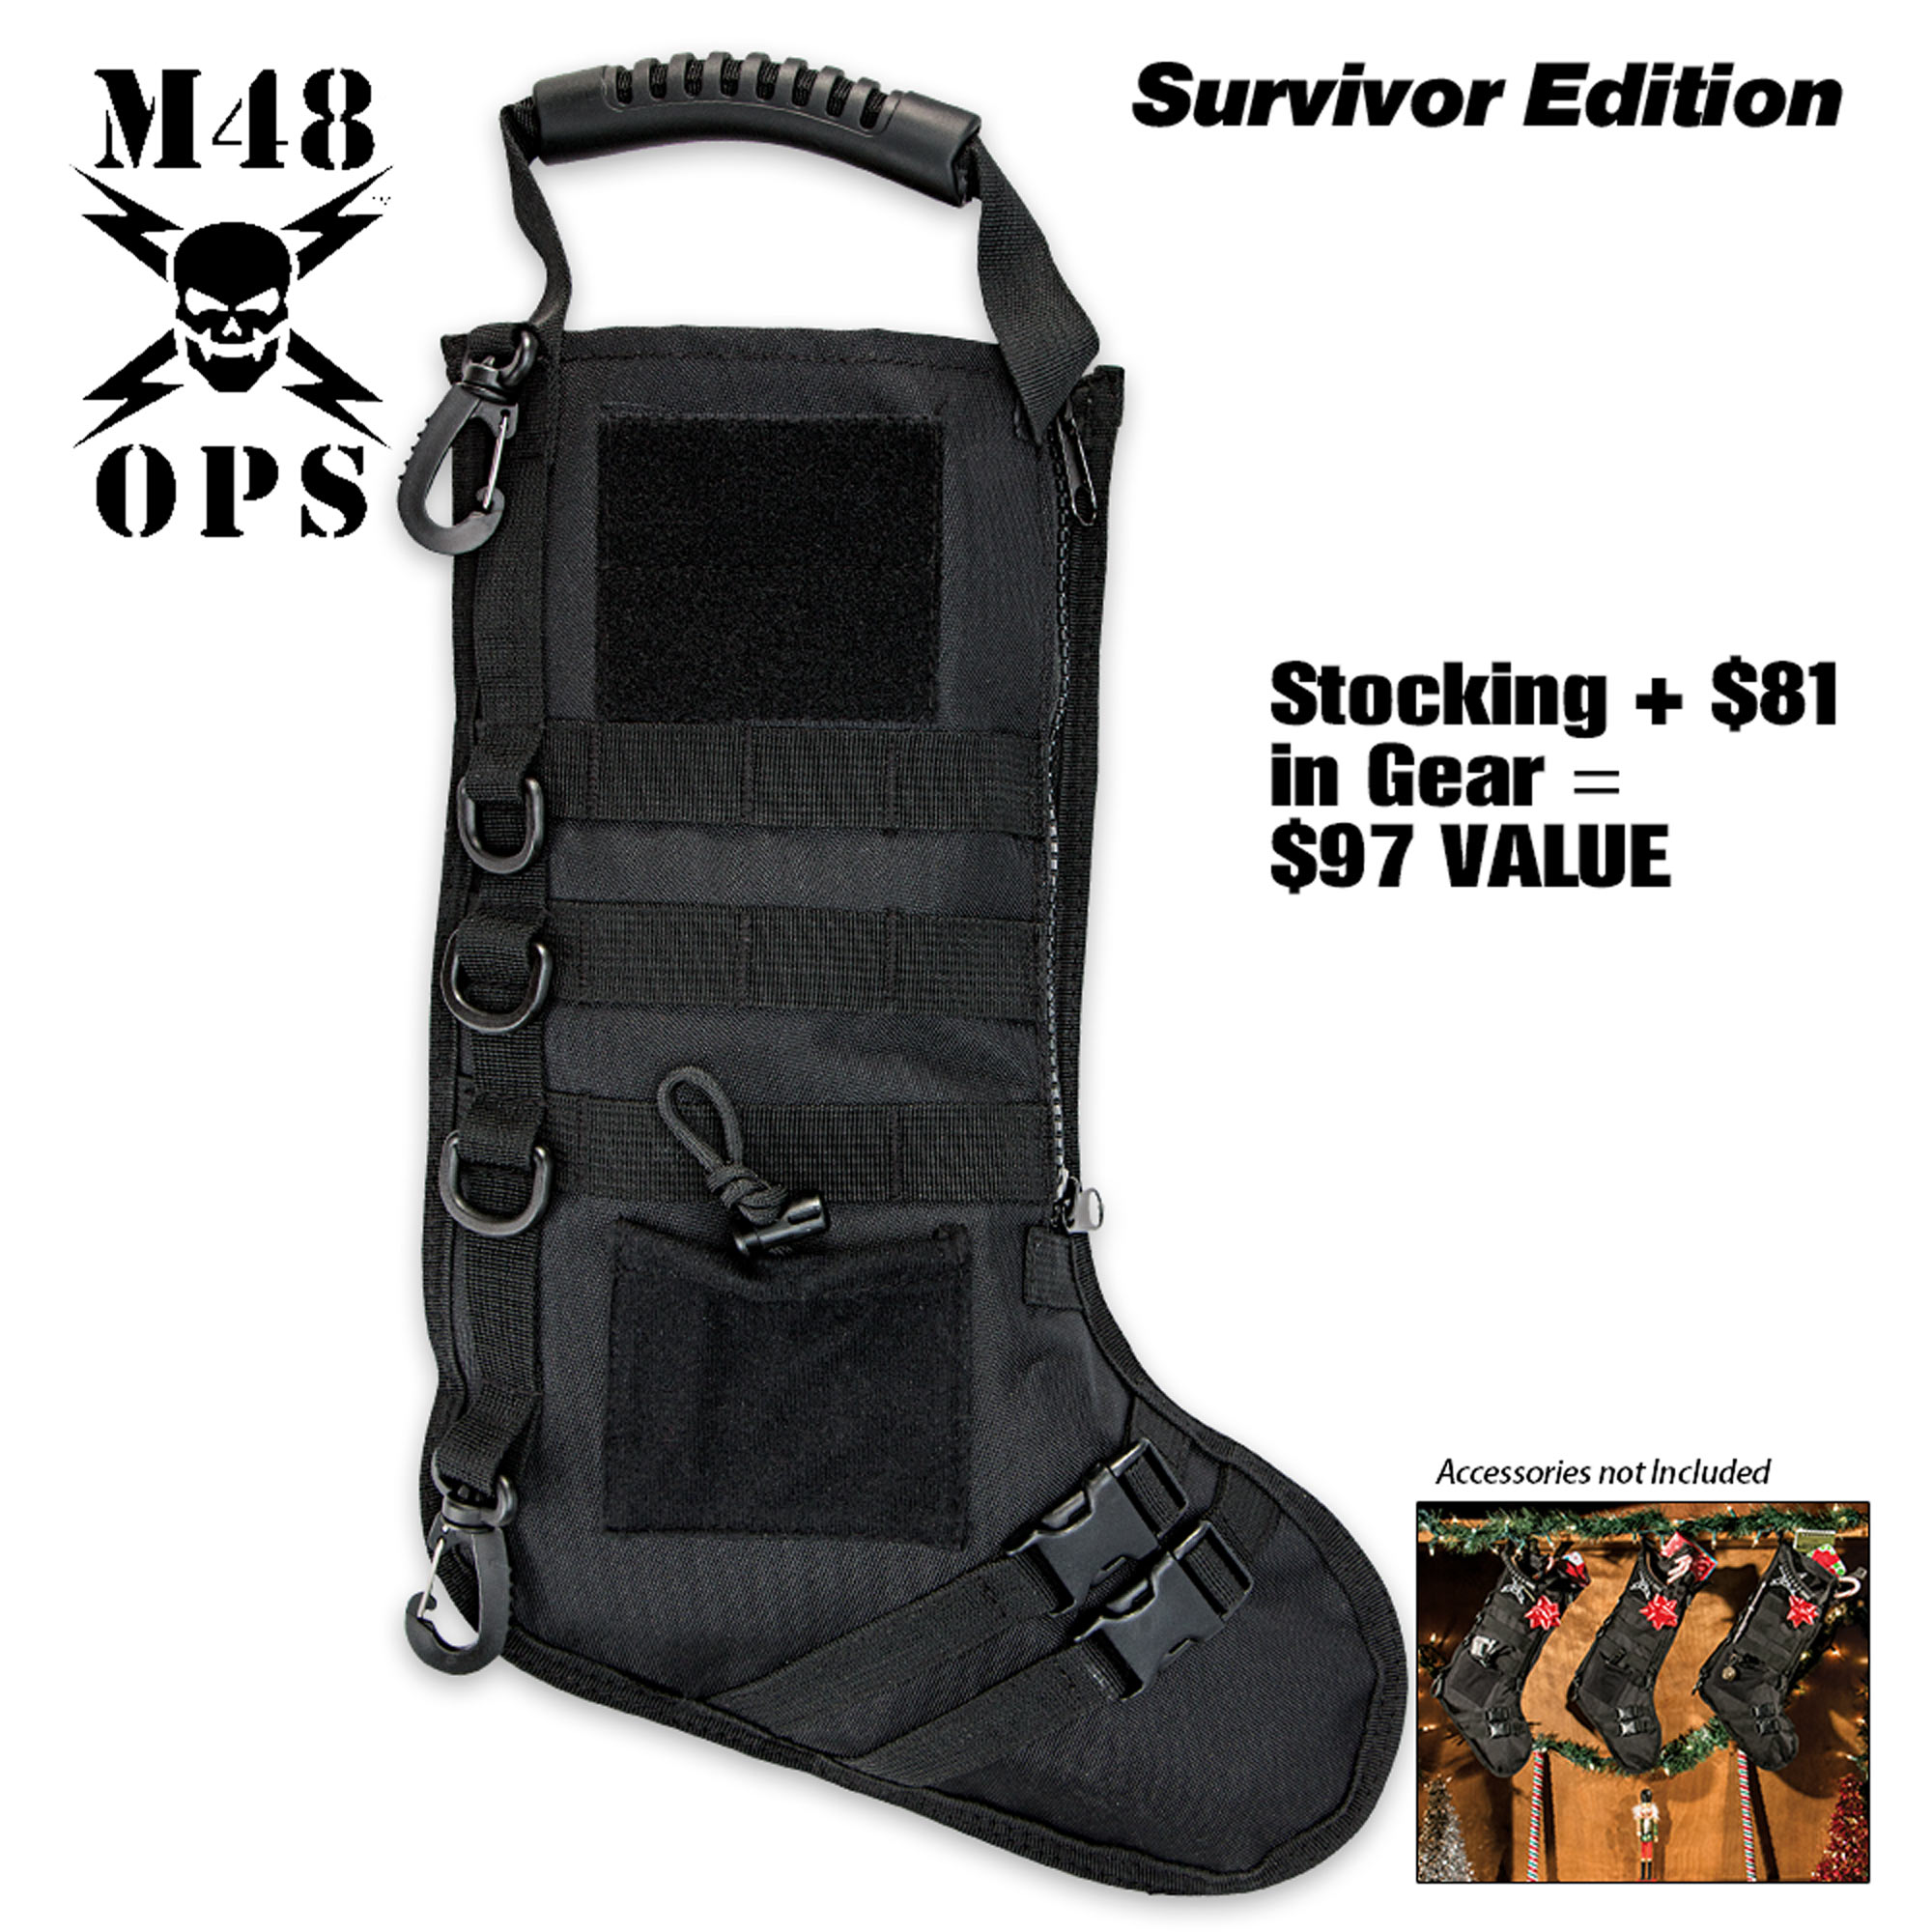 Tactical Christmas Stocking Stuffed.M48 Tactical Stuffed Stocking Survivor Edition Filled With 40 In Survival Gear